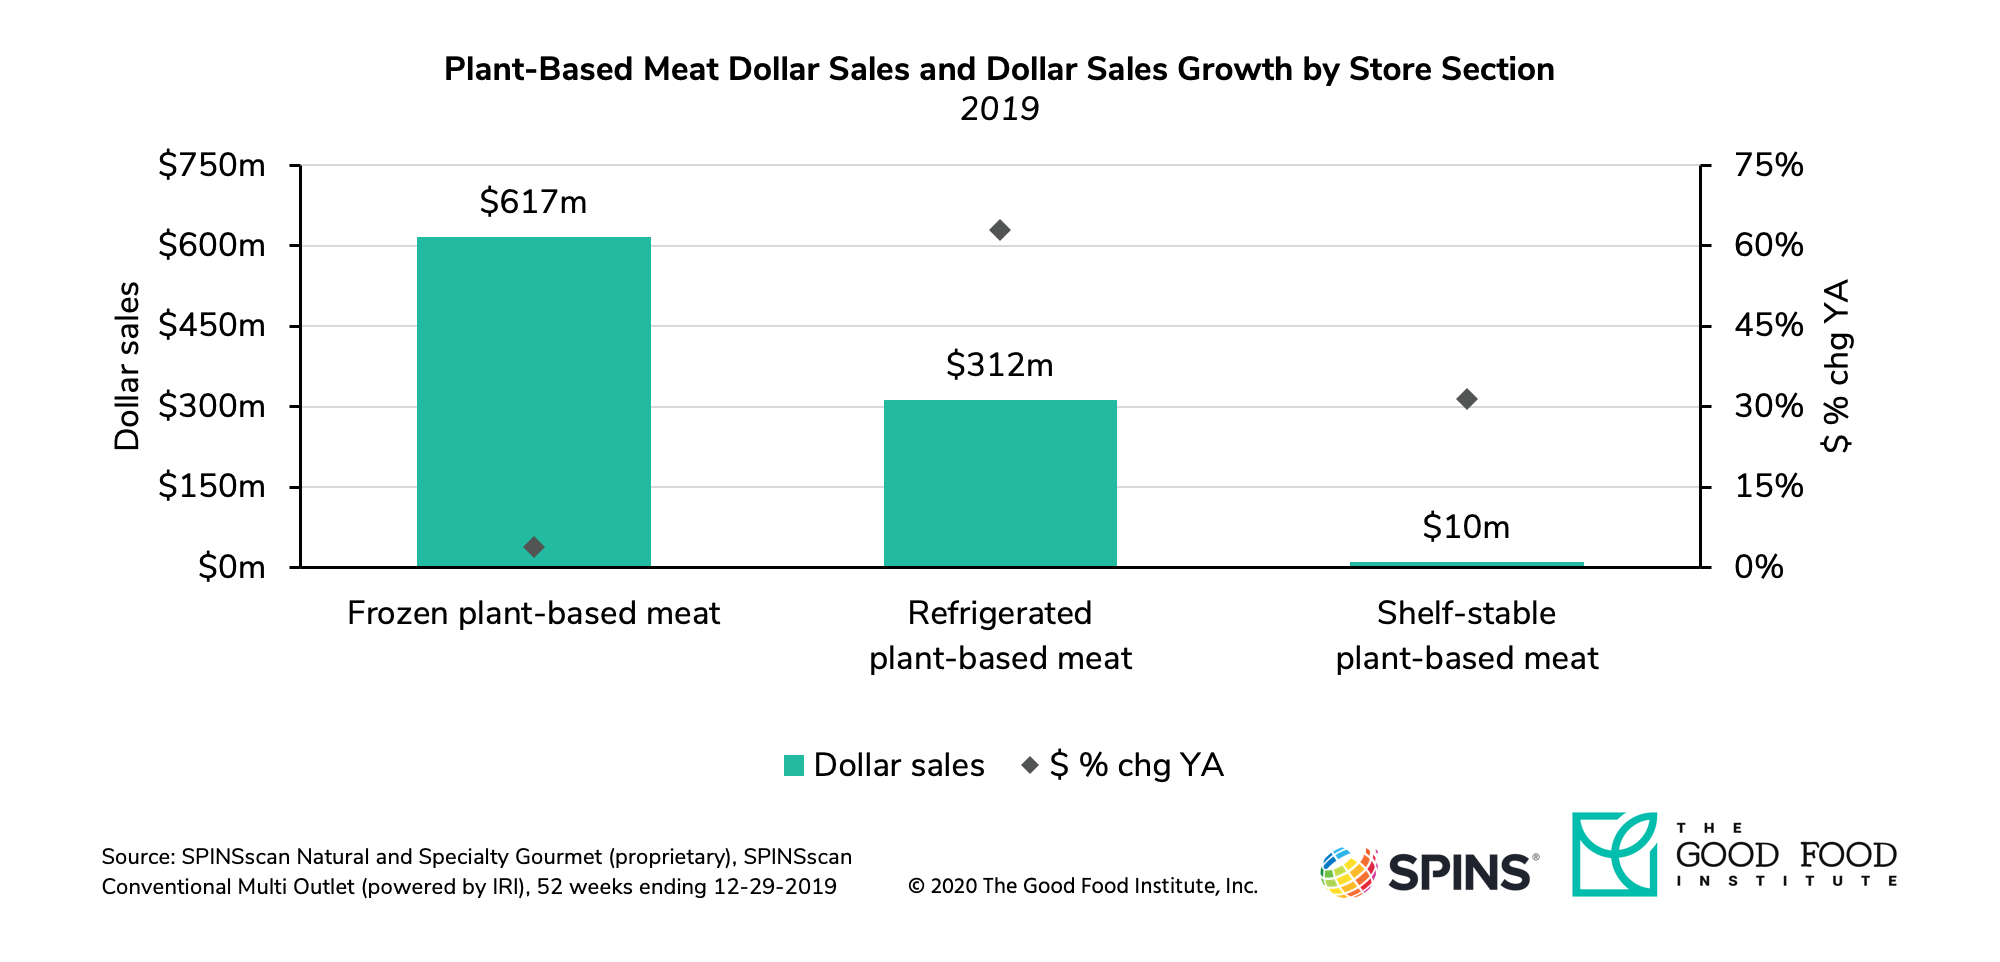 Dollar sales of refrigerated plant-based meat increased 63 percent in 2019.